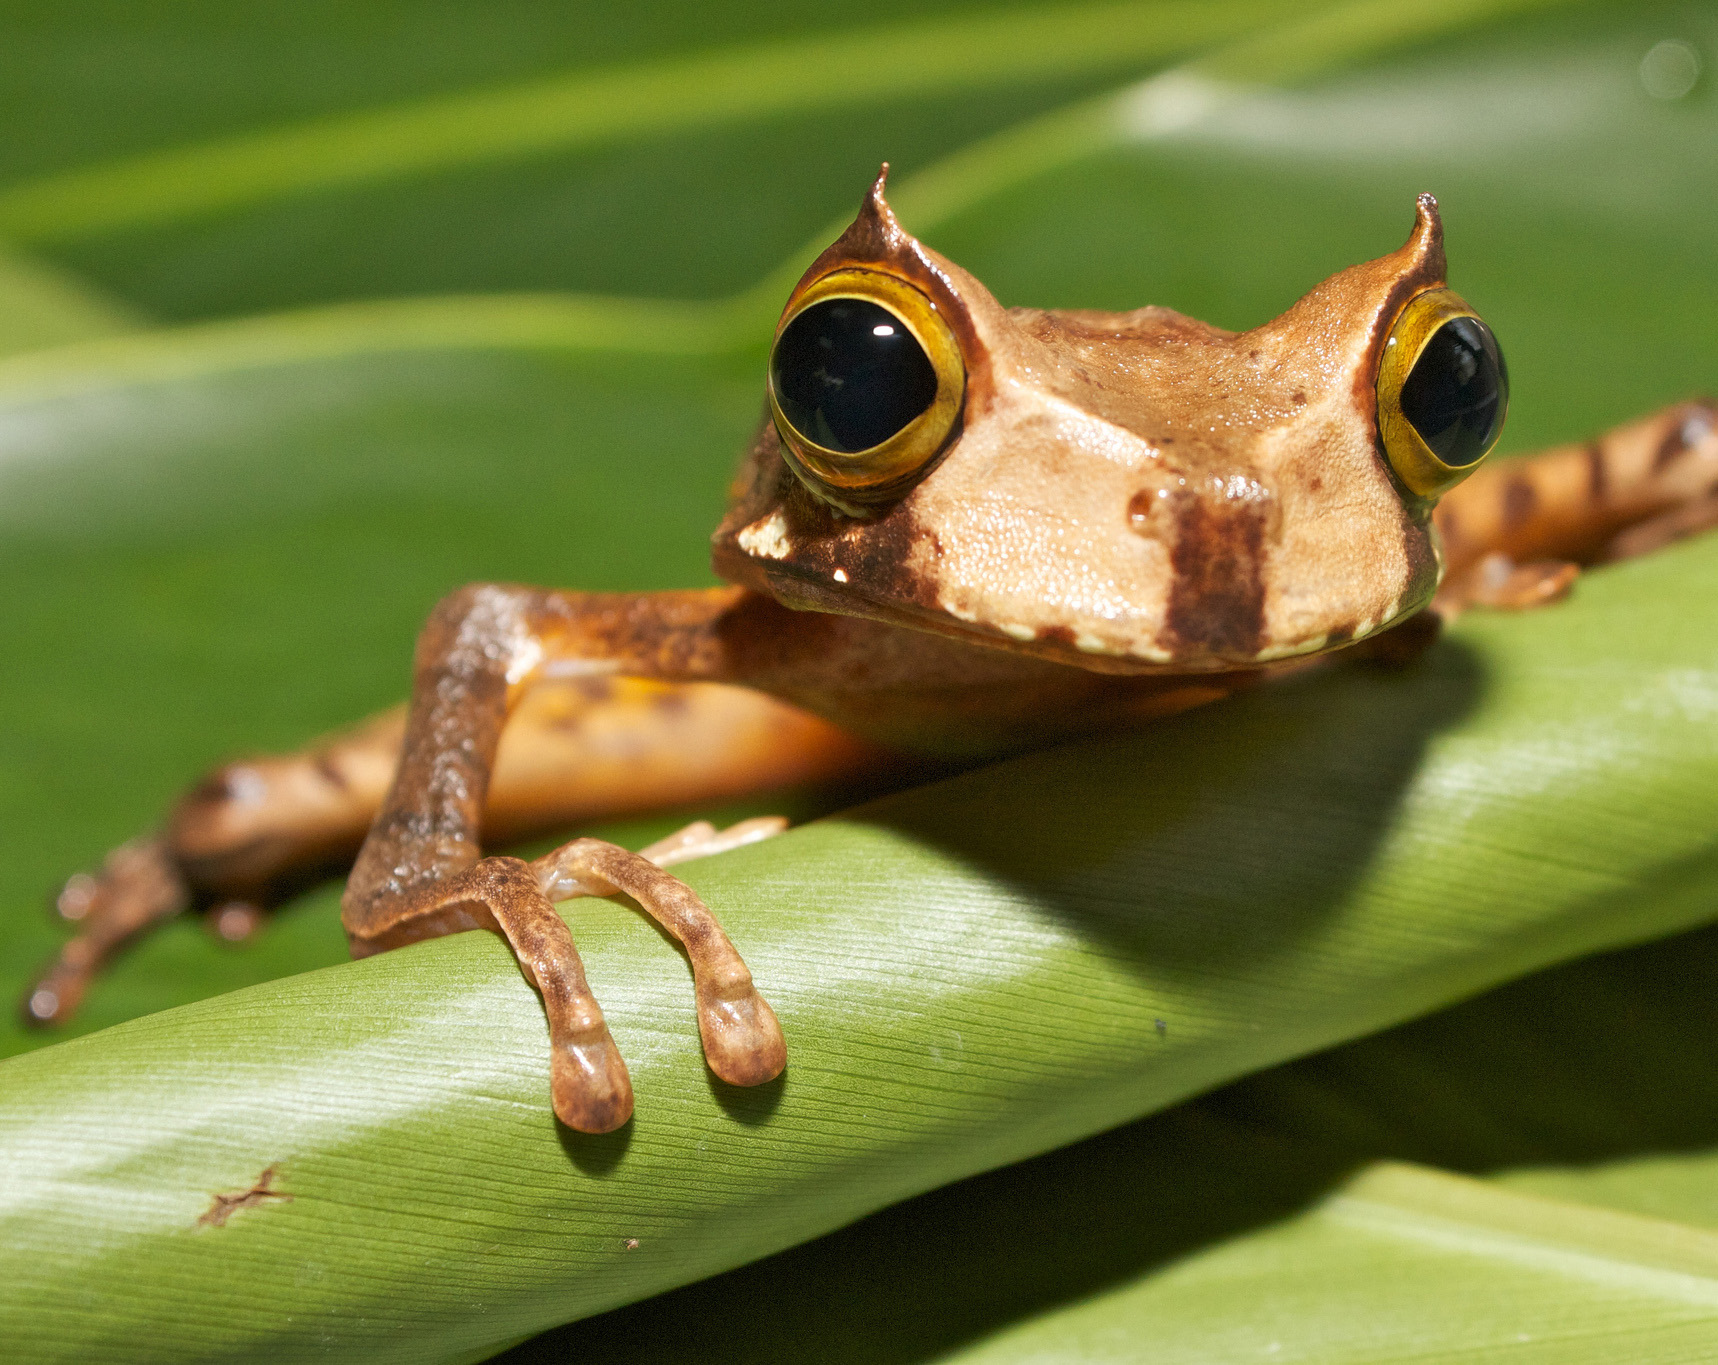 A young horned marsupial frog (Gastrotheca cornuta) in Panama. Photo by Brian Gratwicke